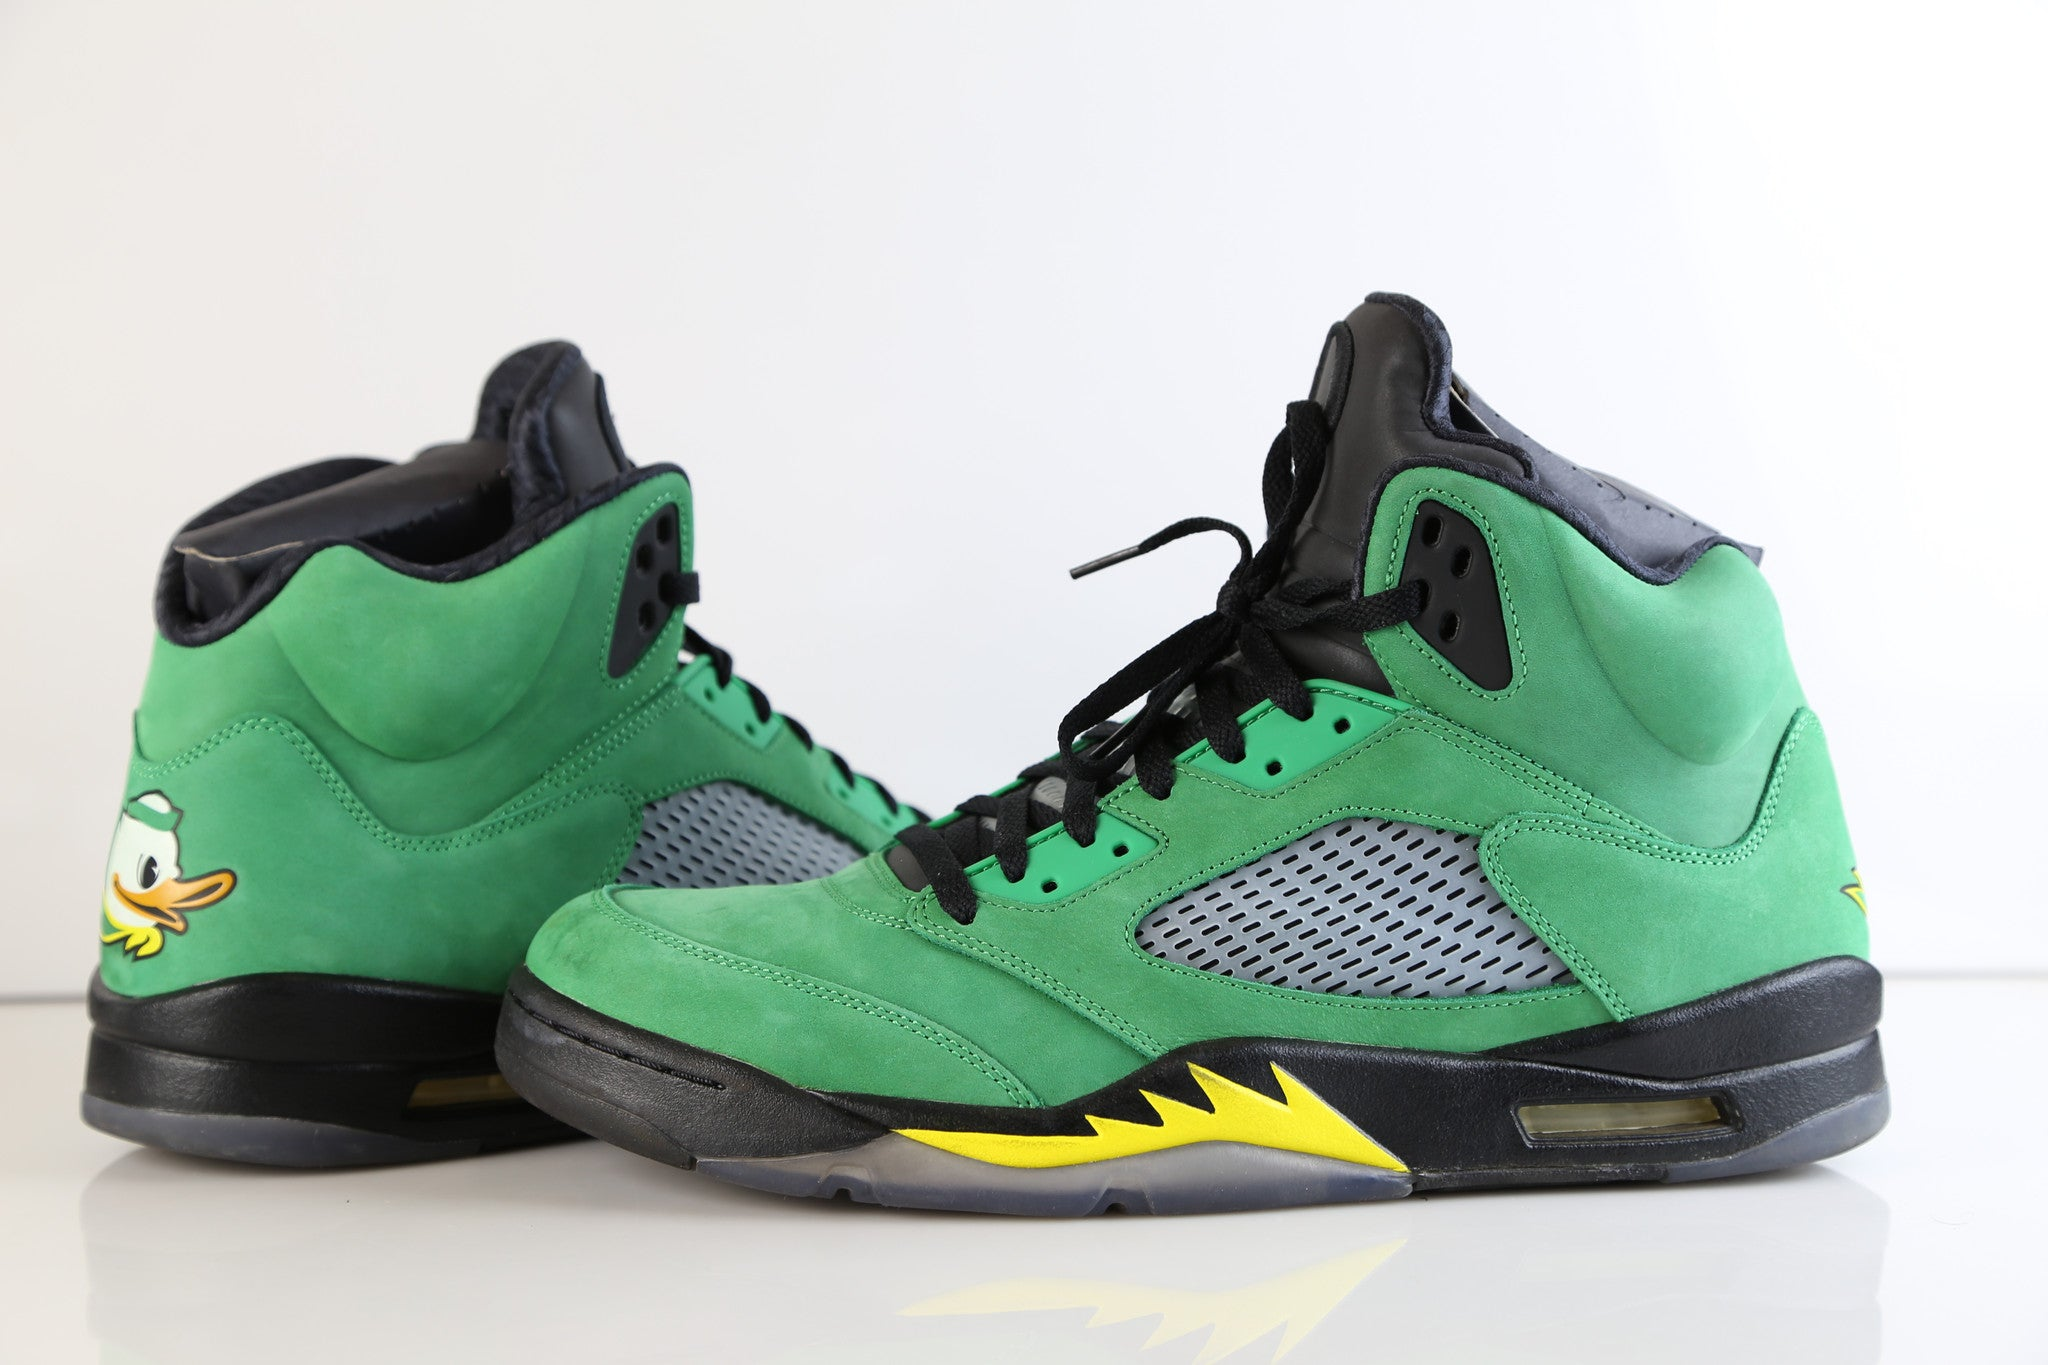 meet 91663 7e3aa Nike Air Jordan Retro 5 Oregon Ducks Apple Green PE Sample size 14 (NO    Zadehkicks